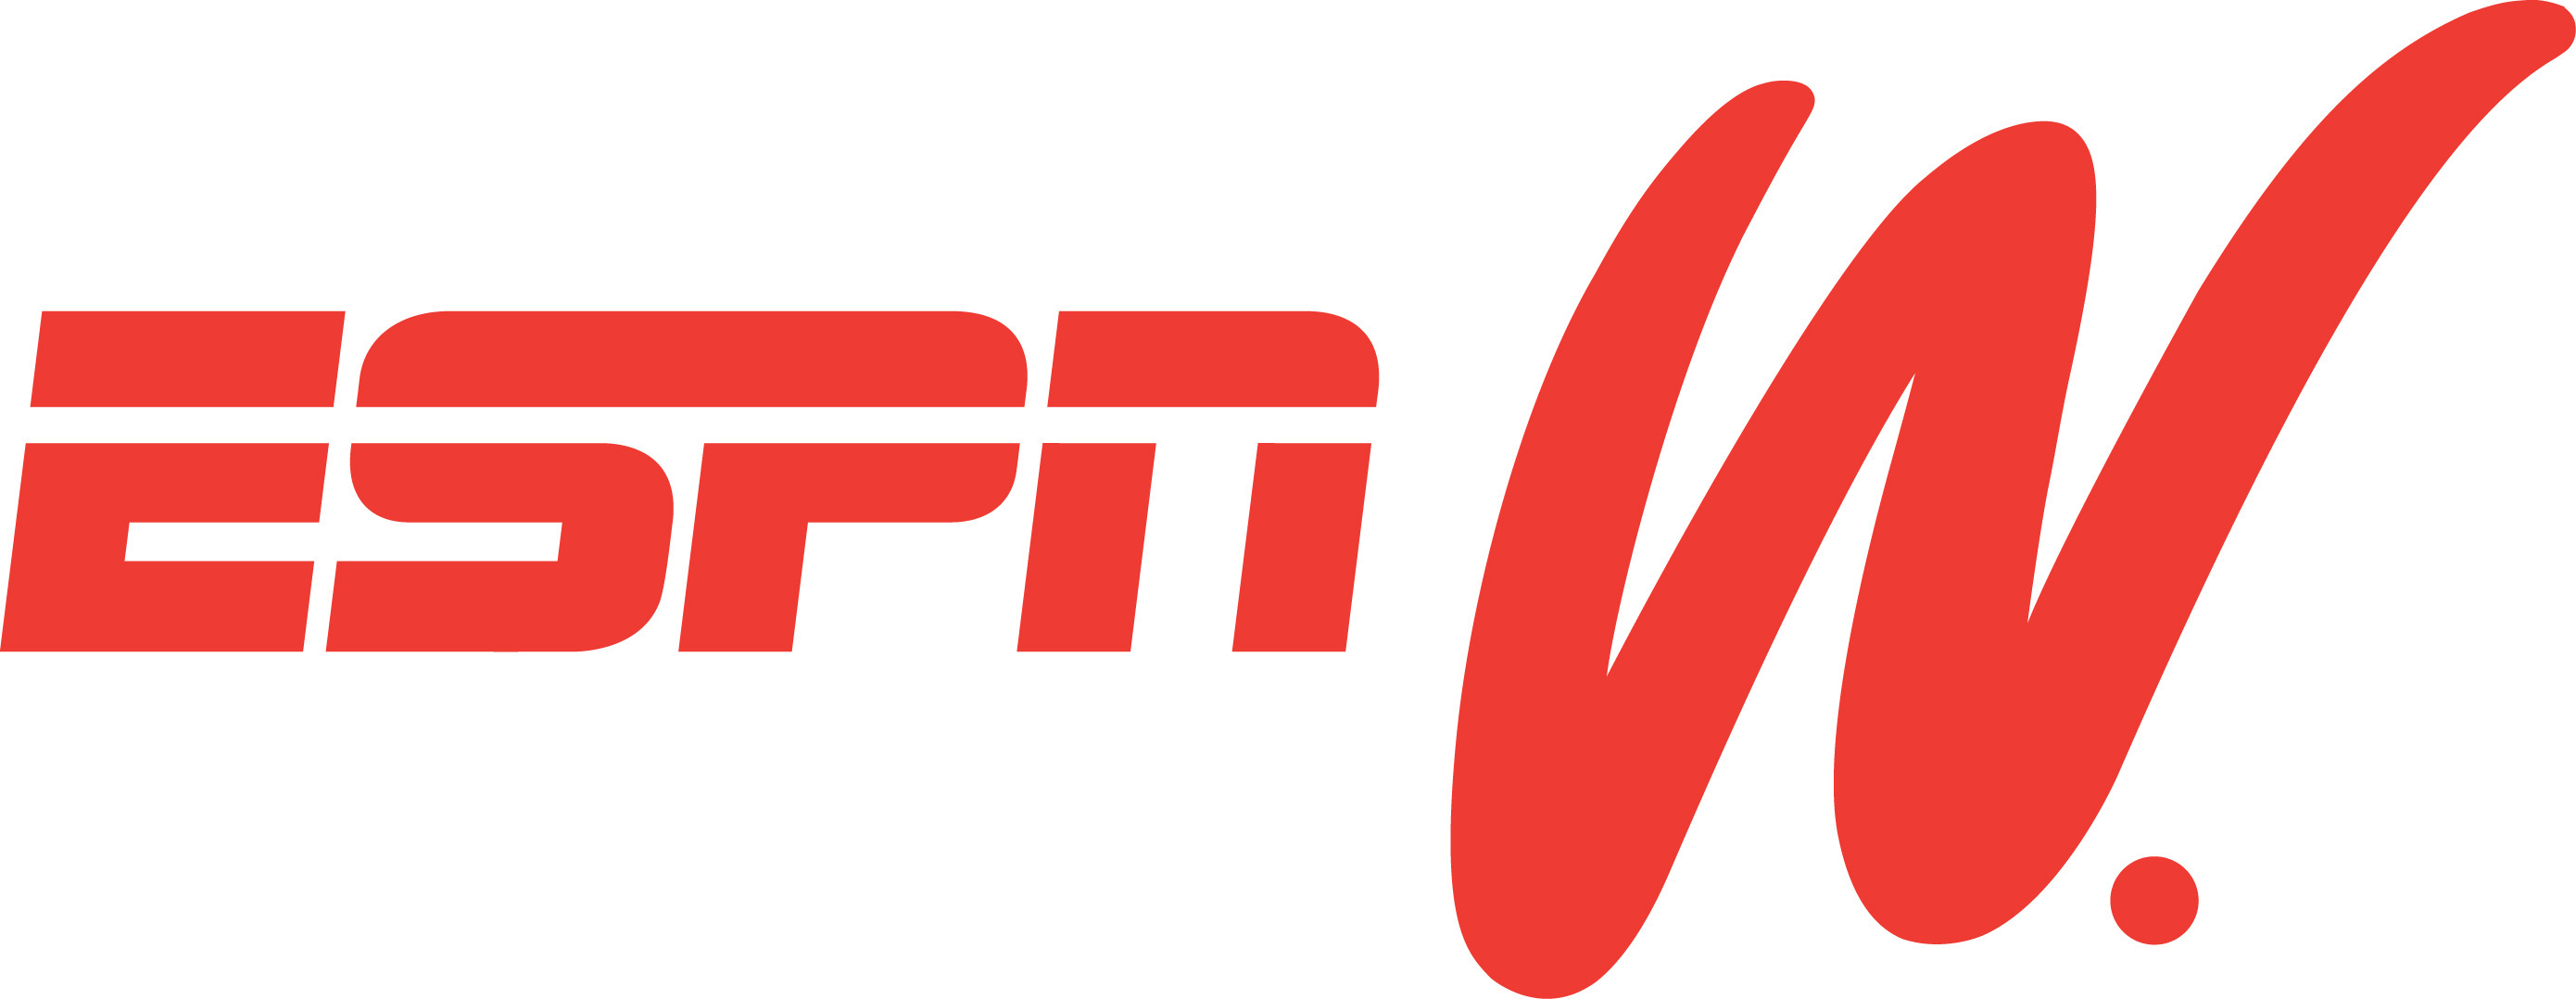 espnW to debut documentary about US Women's World Cup players this ...